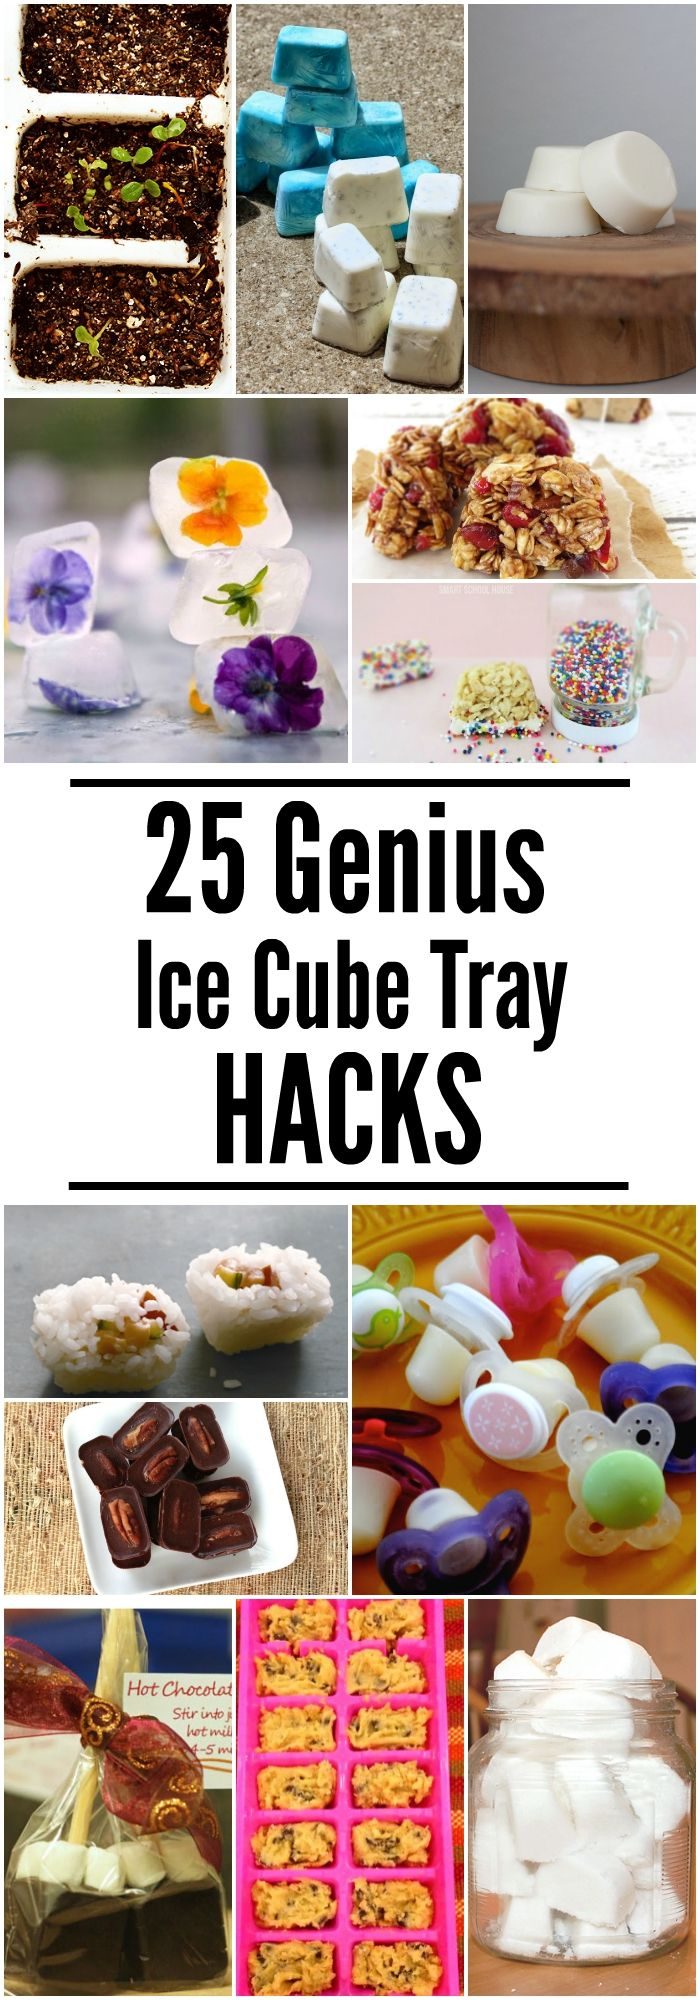 These Ice Cube Tray Hacks will make your life easier (and so much more delicious!) Click now!